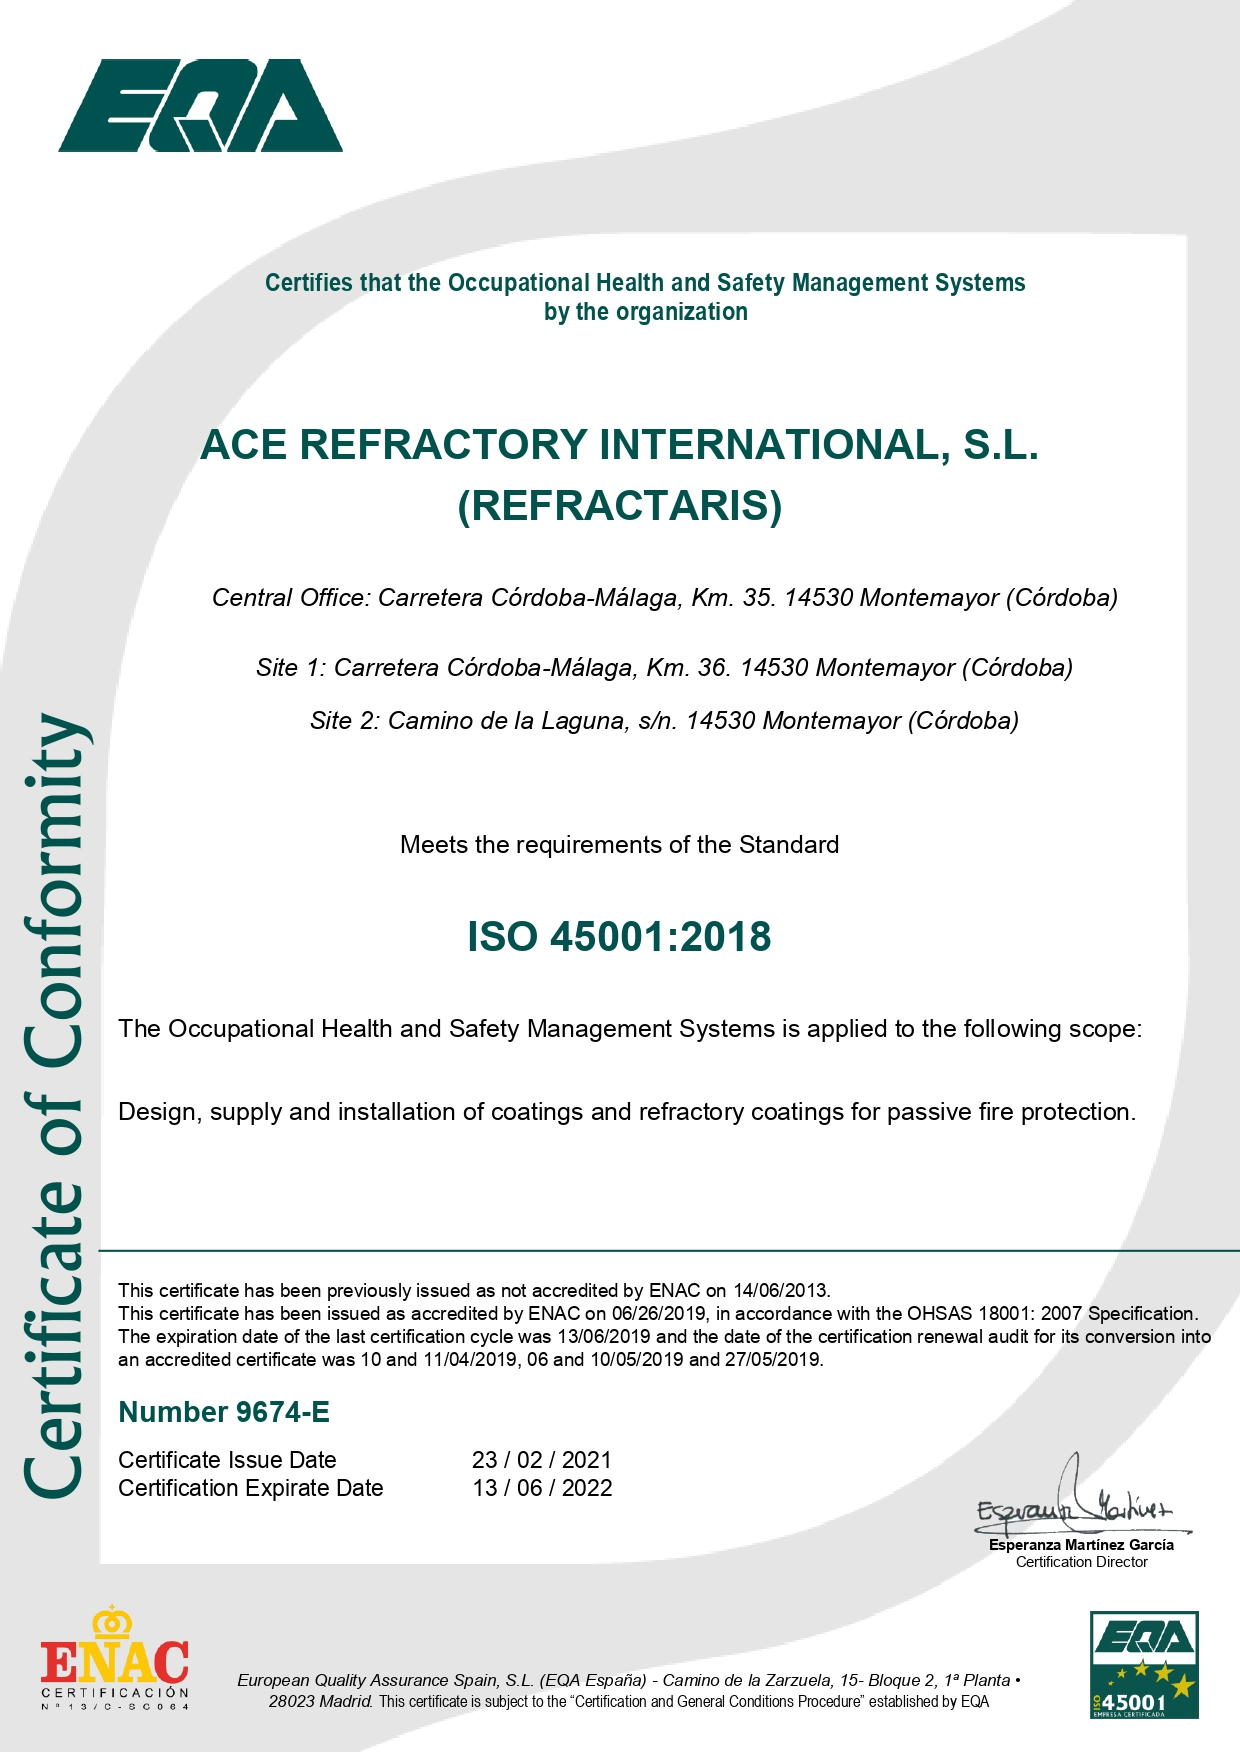 9674-E Ace Refractory 45001_2018-2021-02 - Ingl's_page-0001